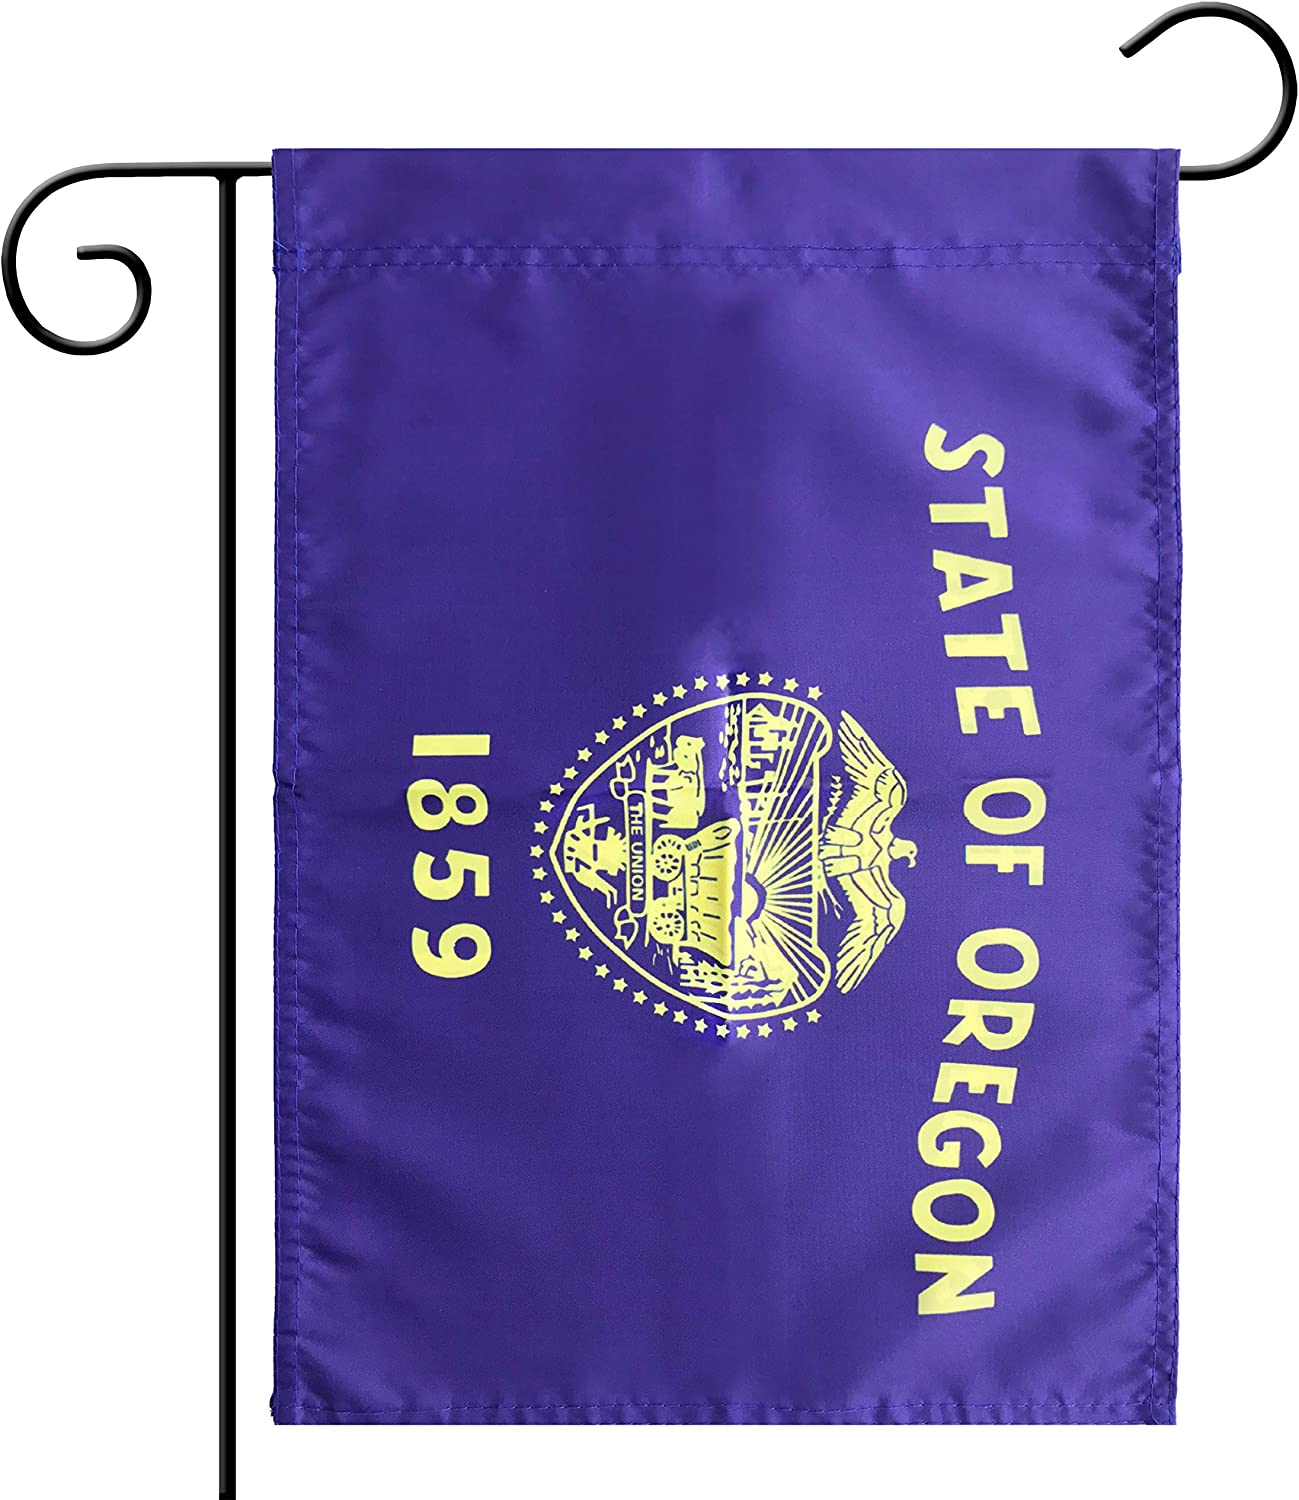 Flag Garden Oregon State Garden, Garden Decoration, Indoor and Outdoor, Celebration Parade, Oregon State Party Event Decorations,Double-Sided.